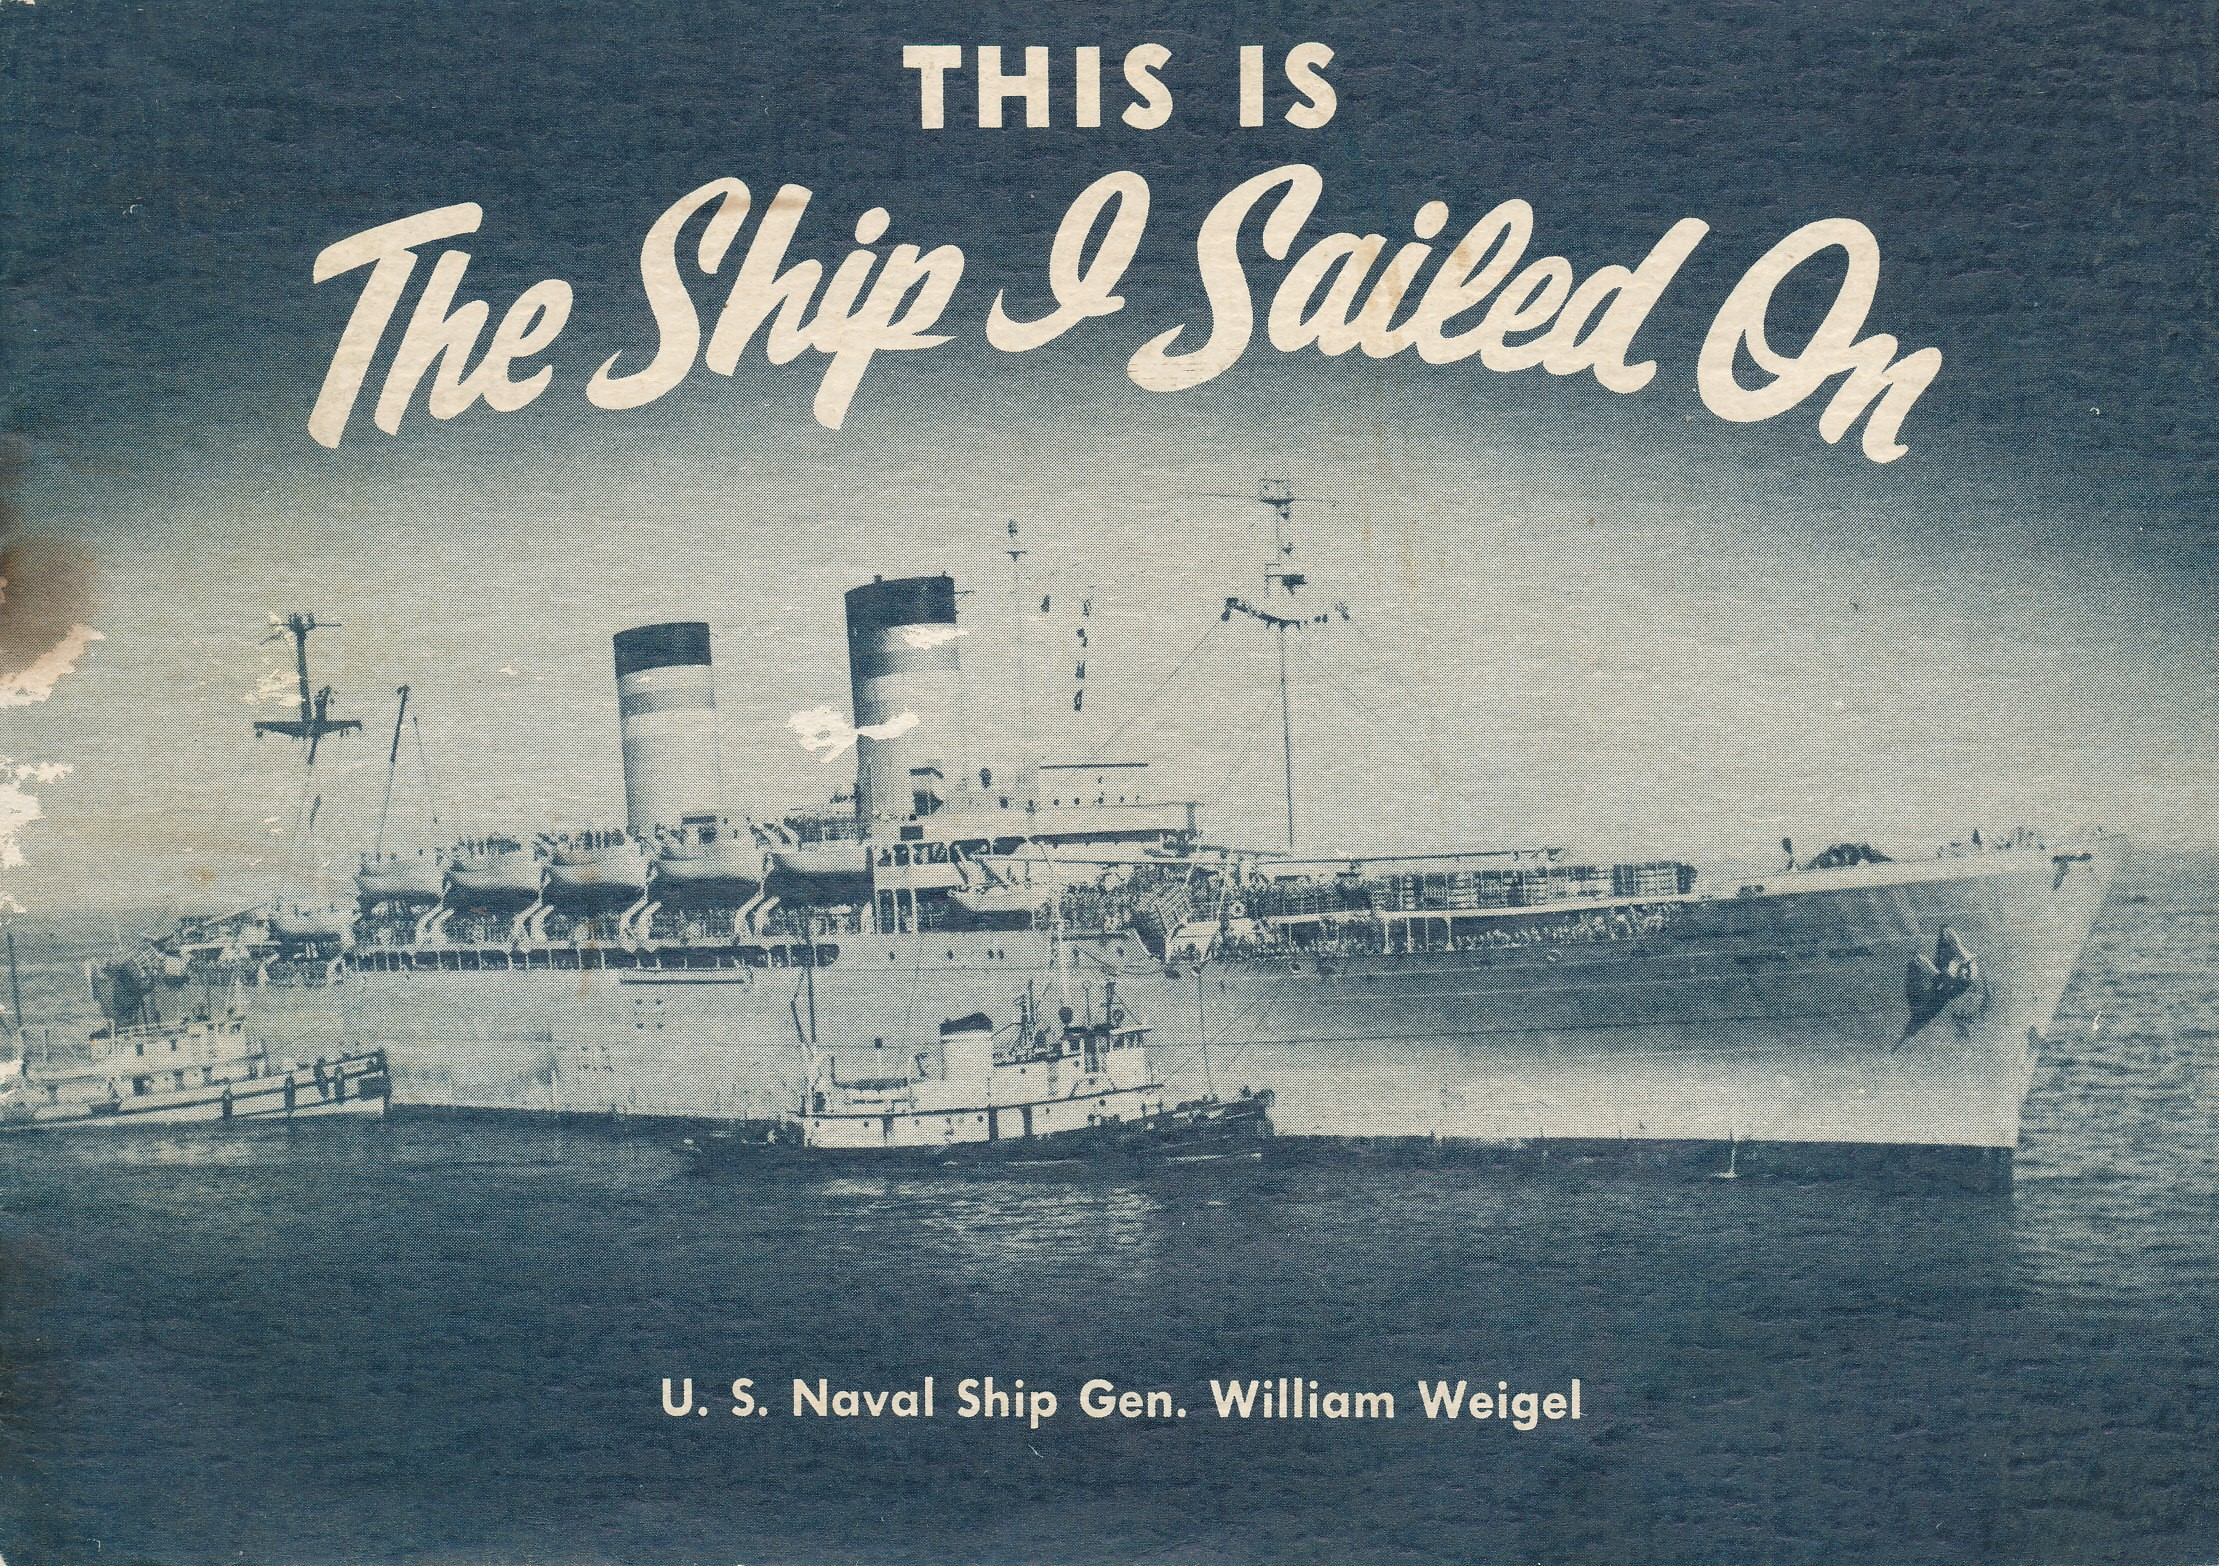 booklet with navy ship on the cover